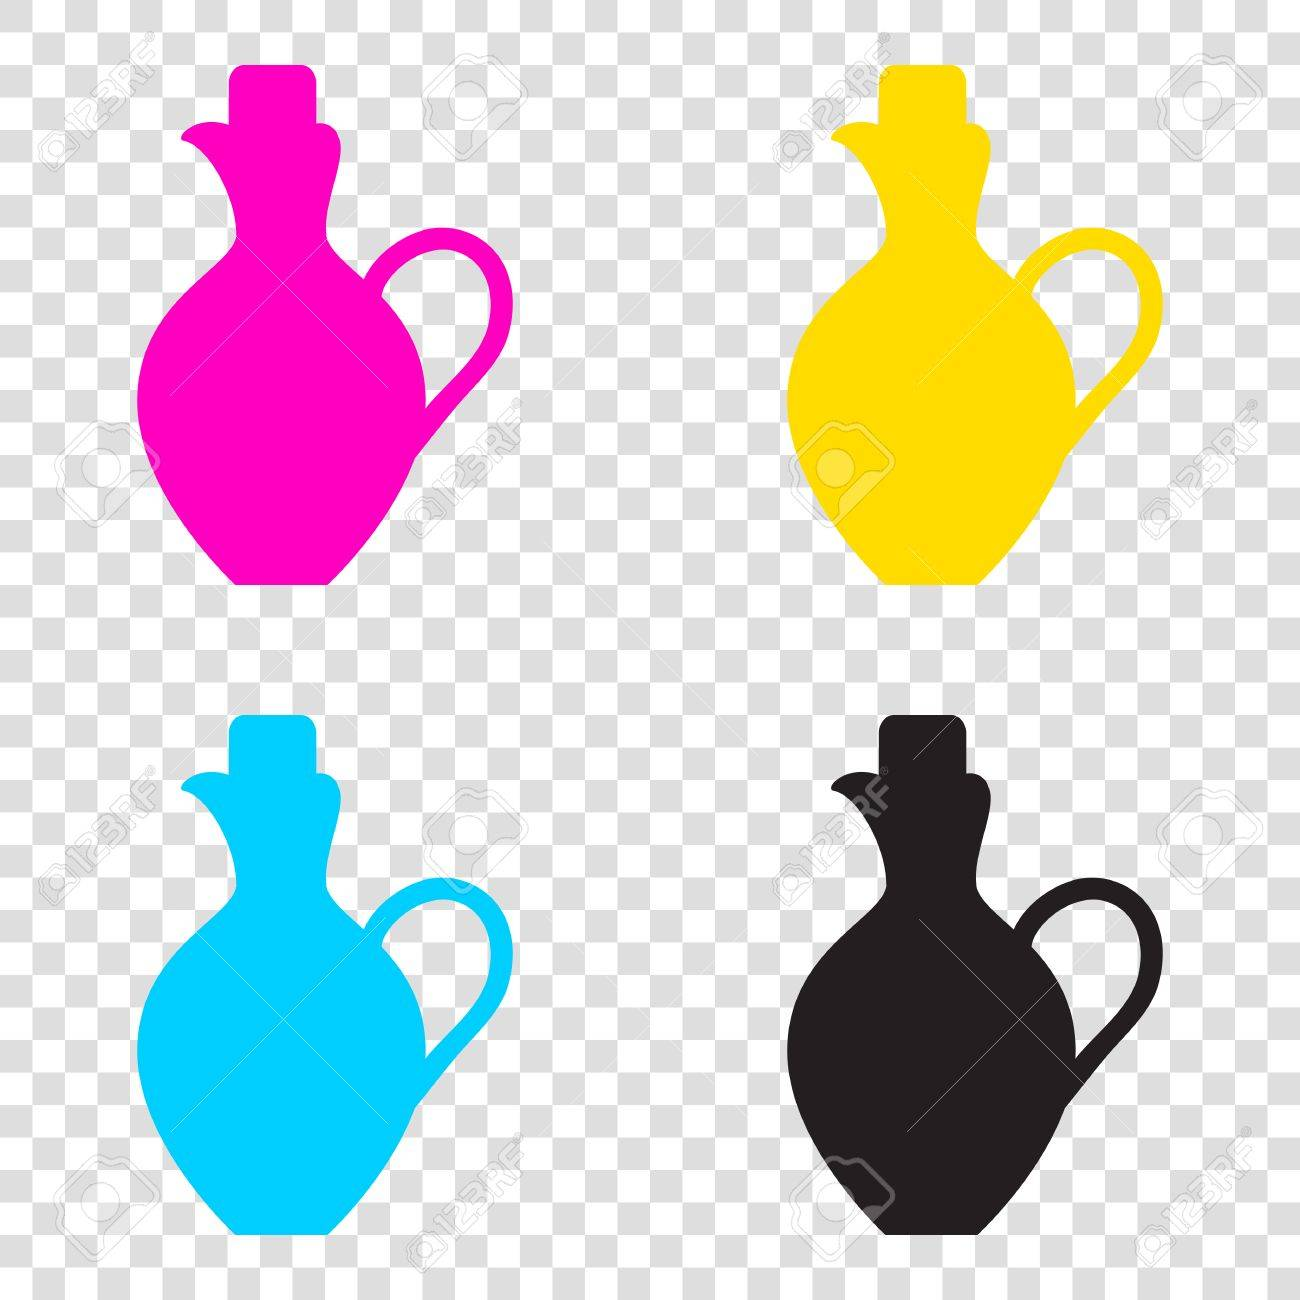 cbecfd51fc25 Amphora sign illustration. CMYK icons on transparent background. Cyan